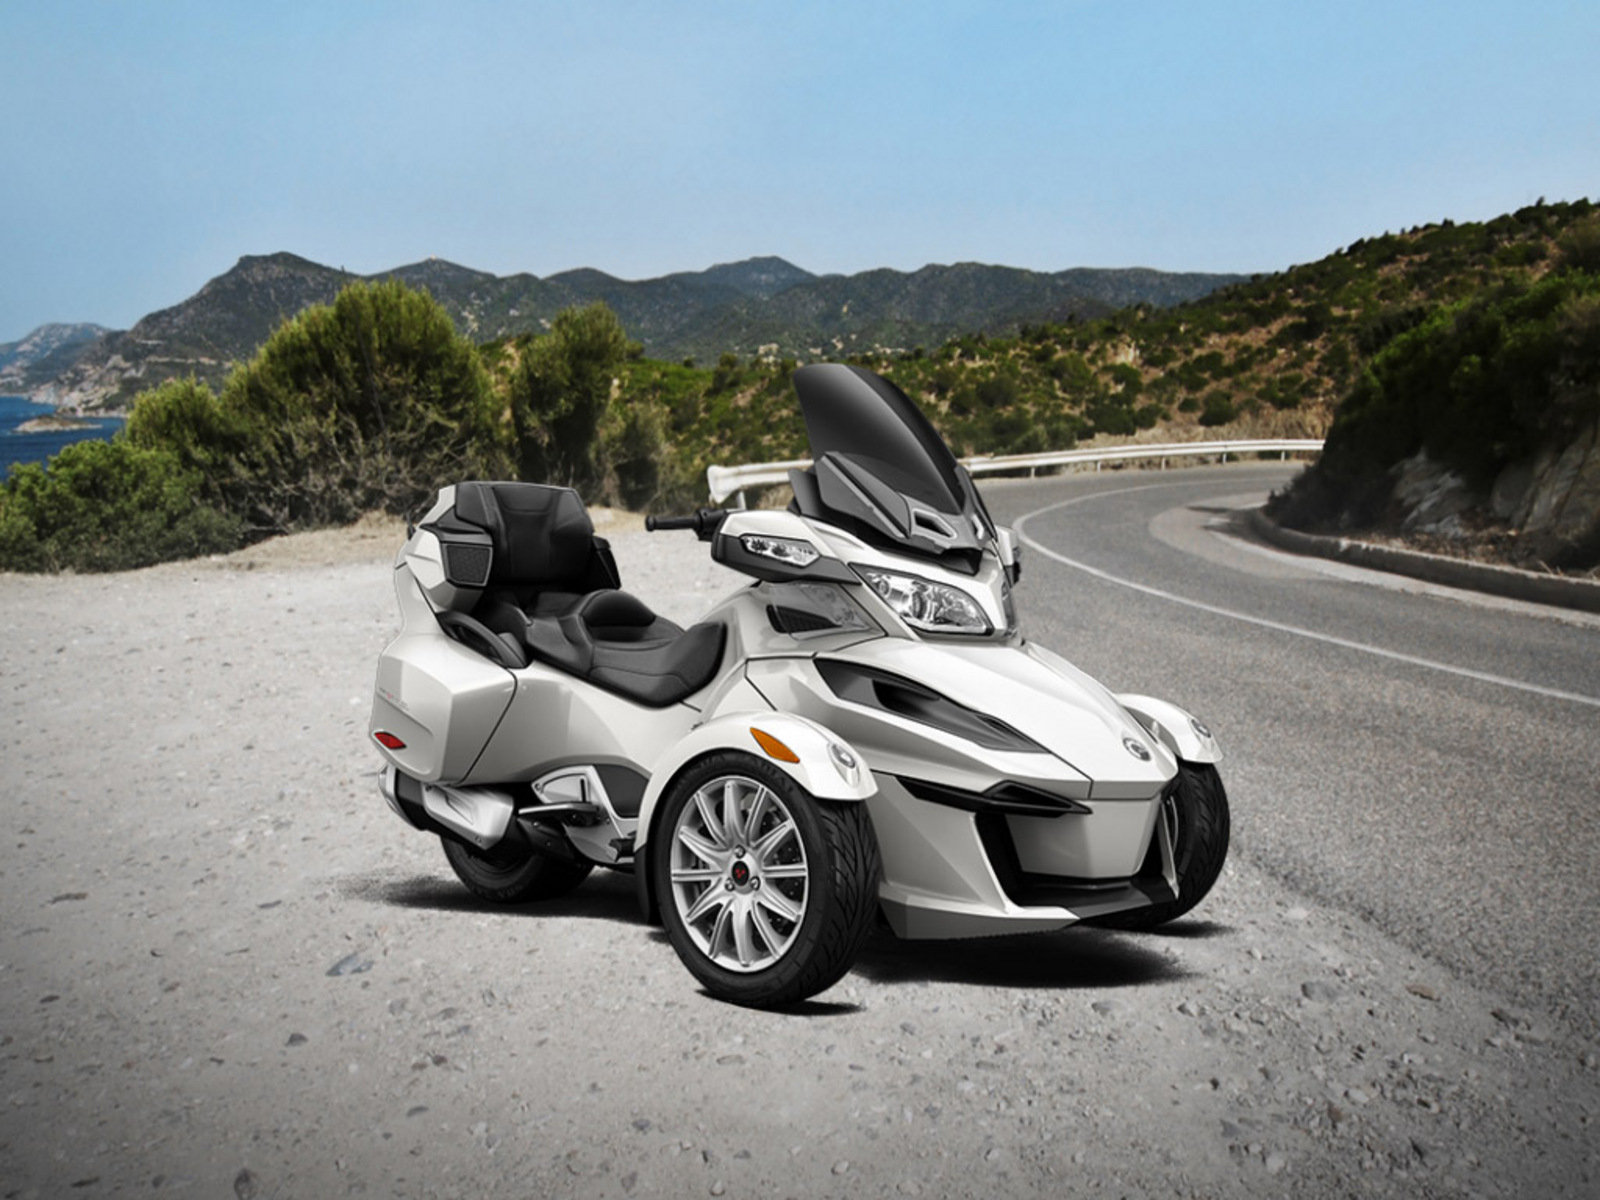 Am Motorcycles Spyder Can Used